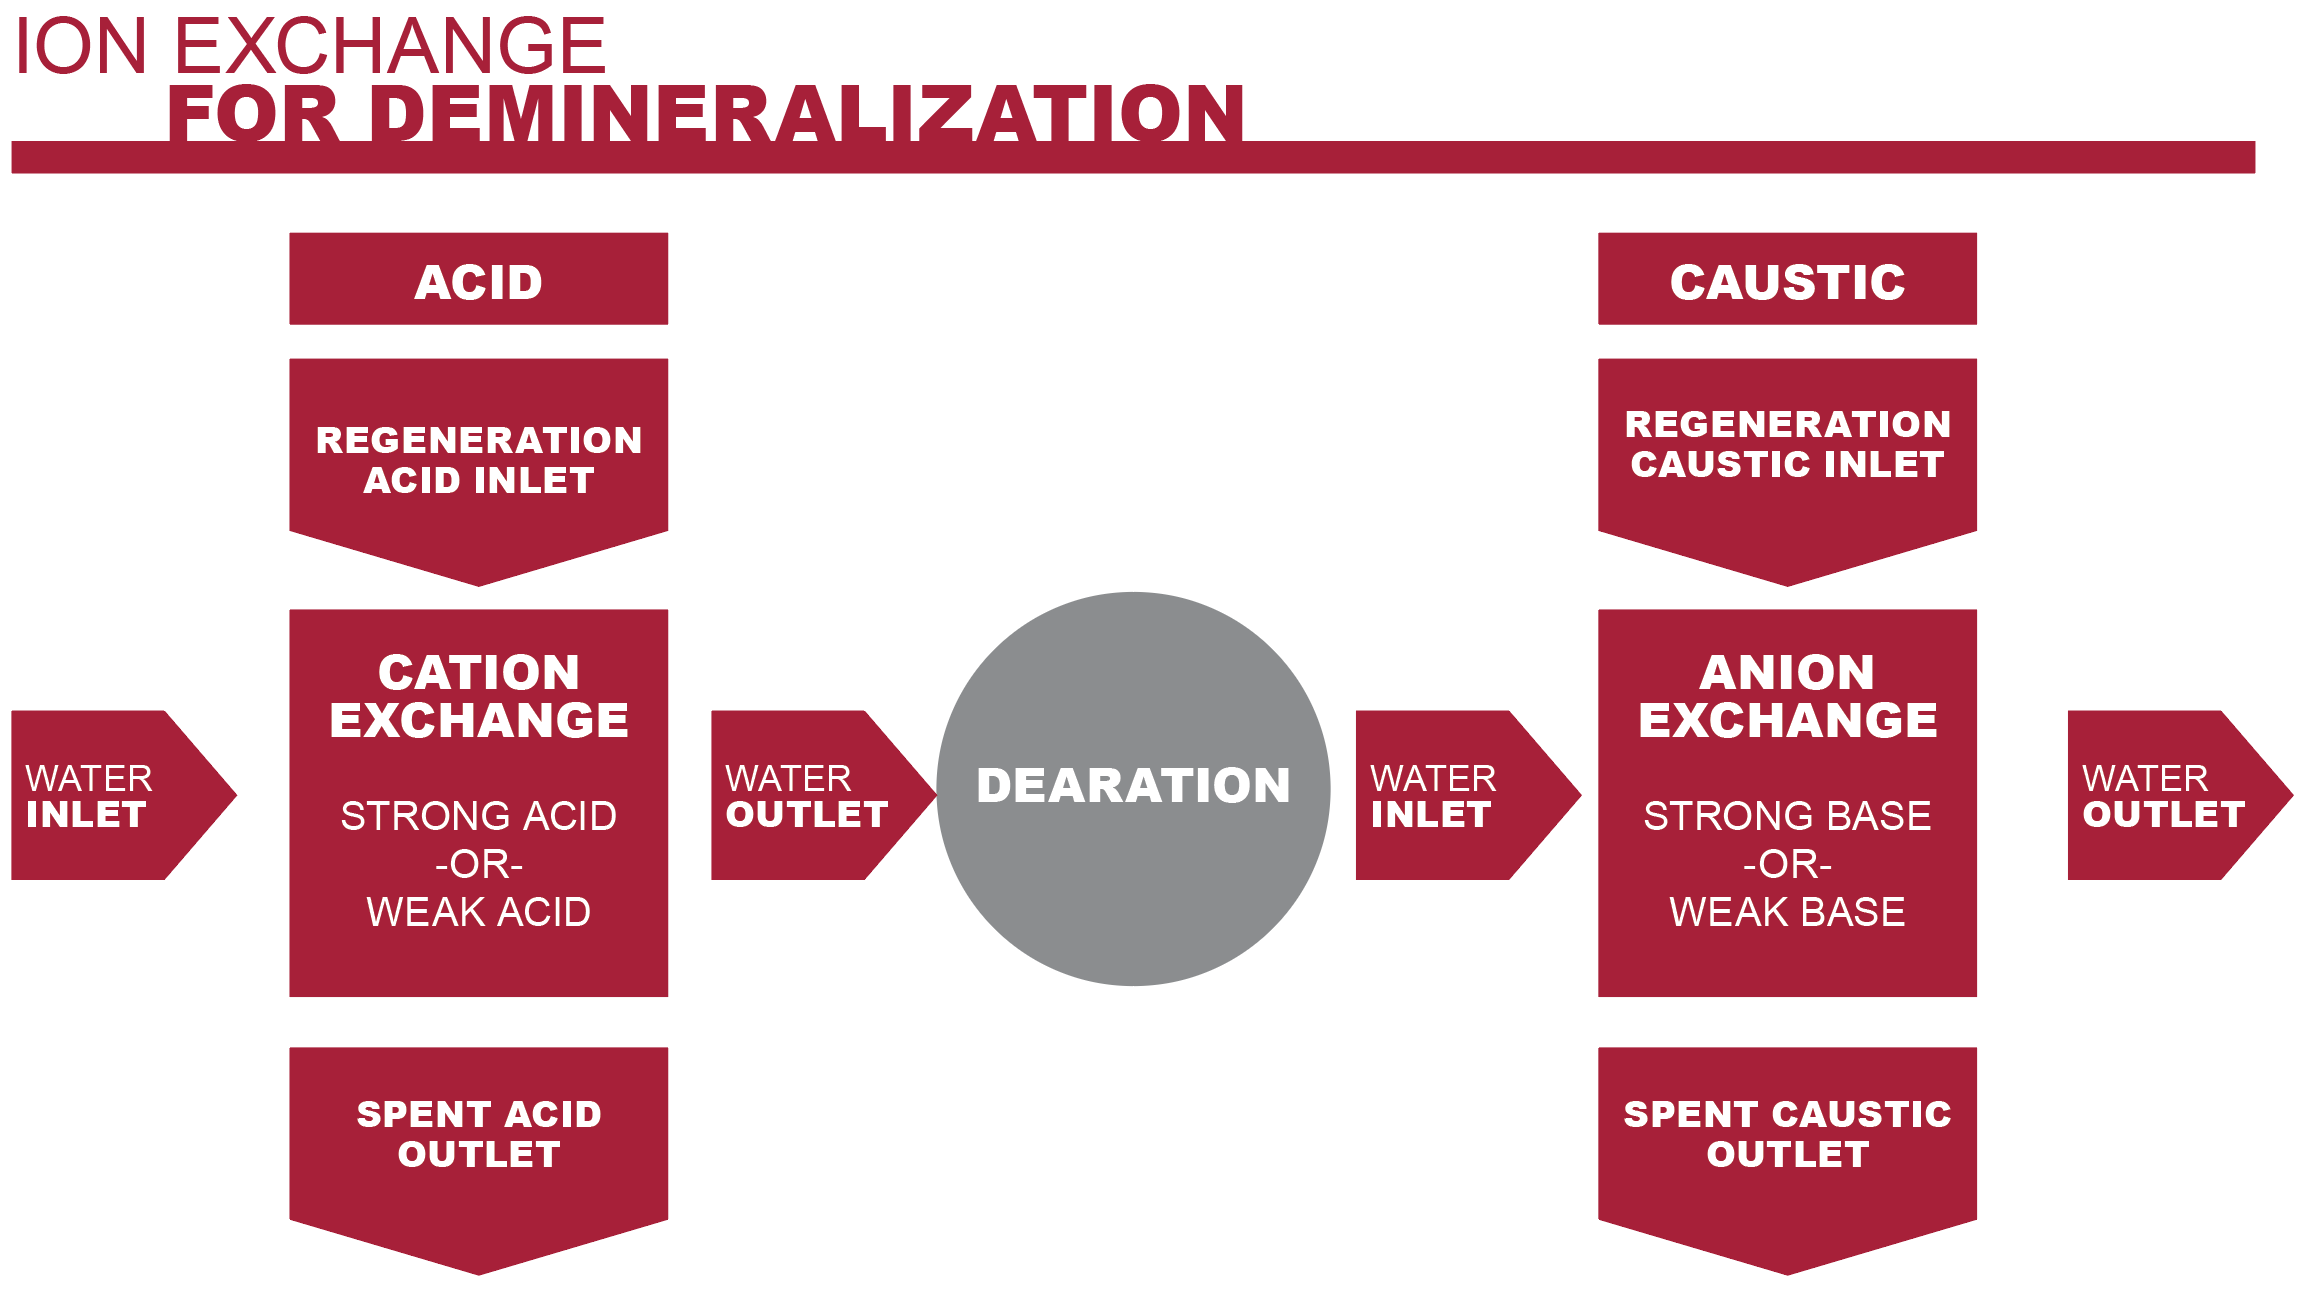 Comparing Vessel and Piping Materials for Demineralization Ion Exchange Systems